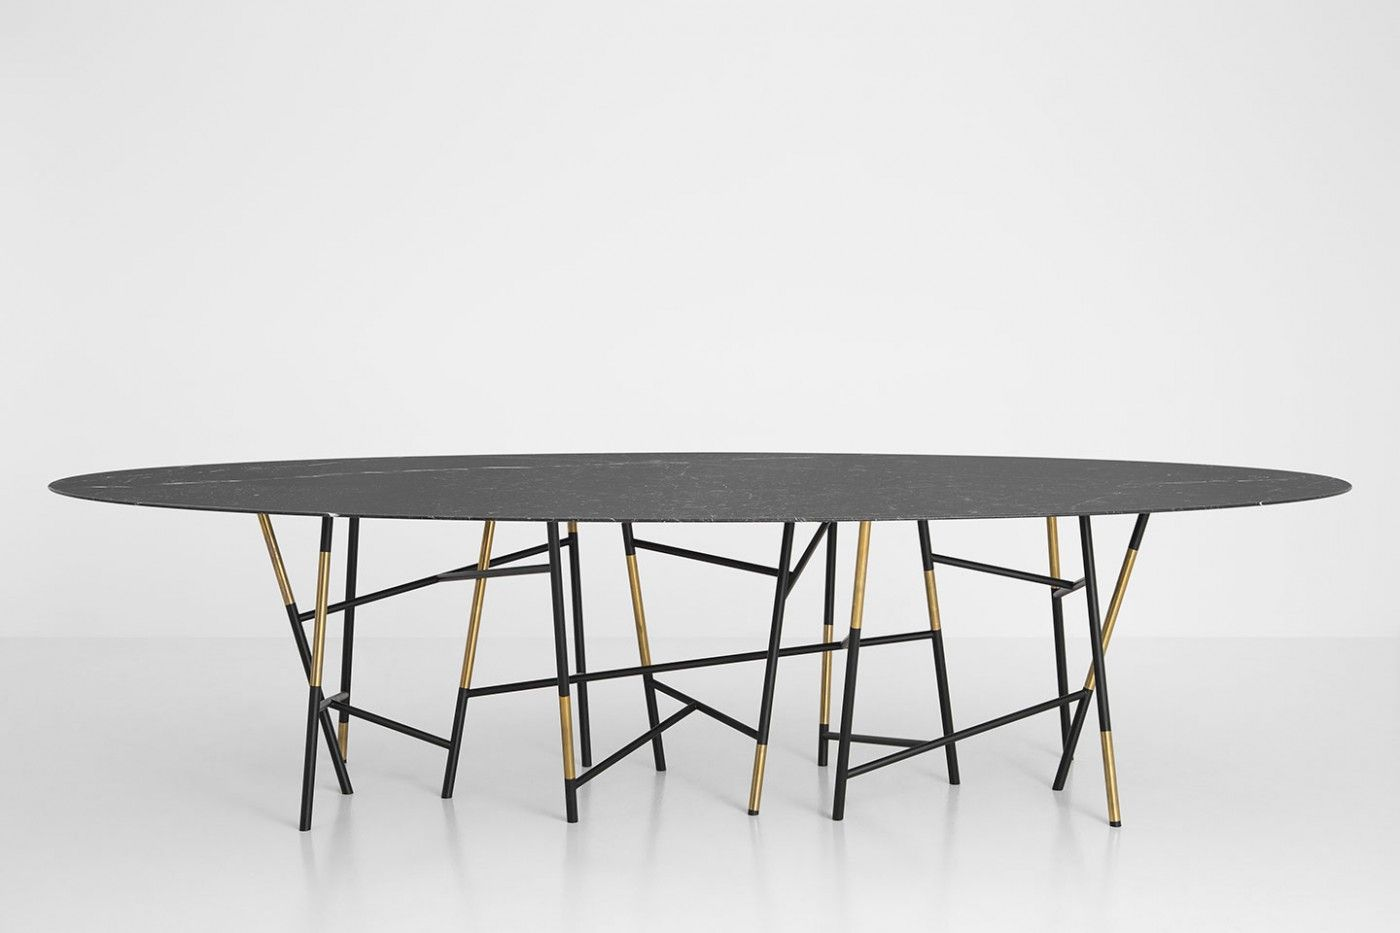 TAVOLO 063   DIMOREGALLERY Elliptical Table With Structure In Matte Black  Painted Metal And Polished Brass